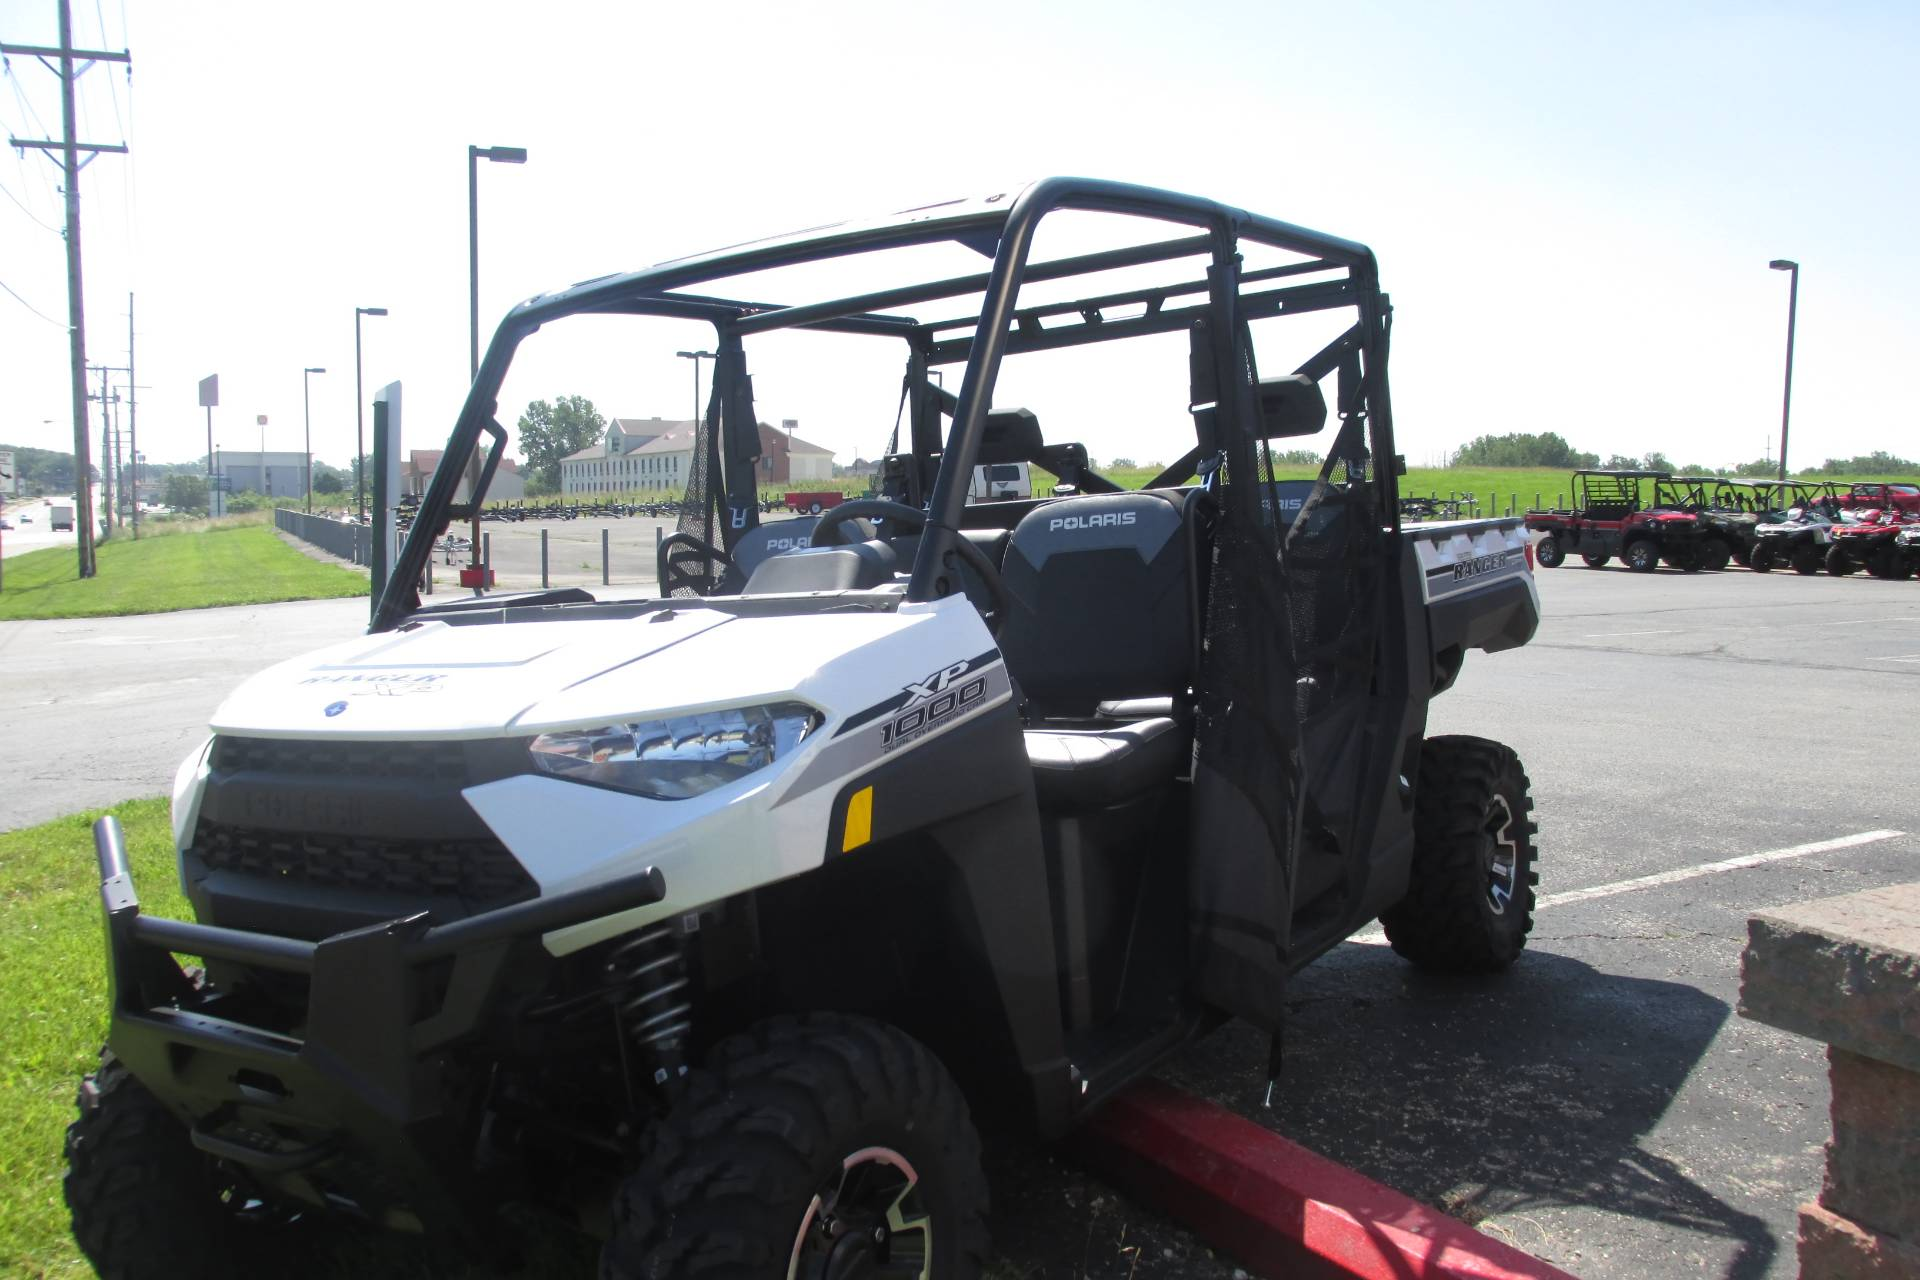 2019 Polaris RANGER XP 1000 CREW in Springfield, Ohio - Photo 2